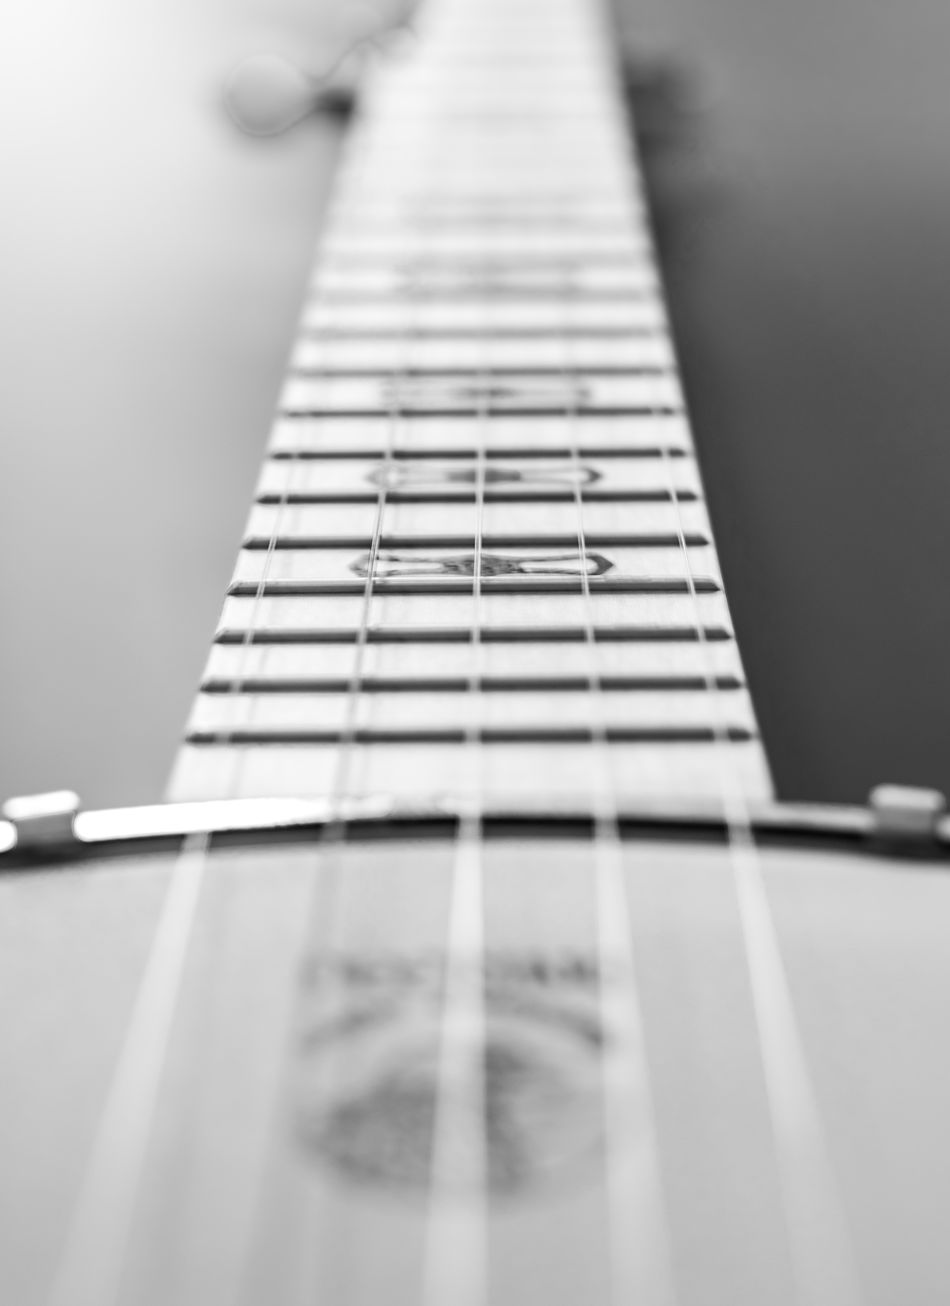 5 Banjo Close-up Deering Deeringbanjos Five String Fretboard Horizontal Instruments LINE Lines Lines And Angles Music Music Brings Us Together Music Is My Life Music Photography  Musica Musical Equipment Musical Instrument Musical Instrument String Musical Instruments Perspective String Instrument Strings Vertical